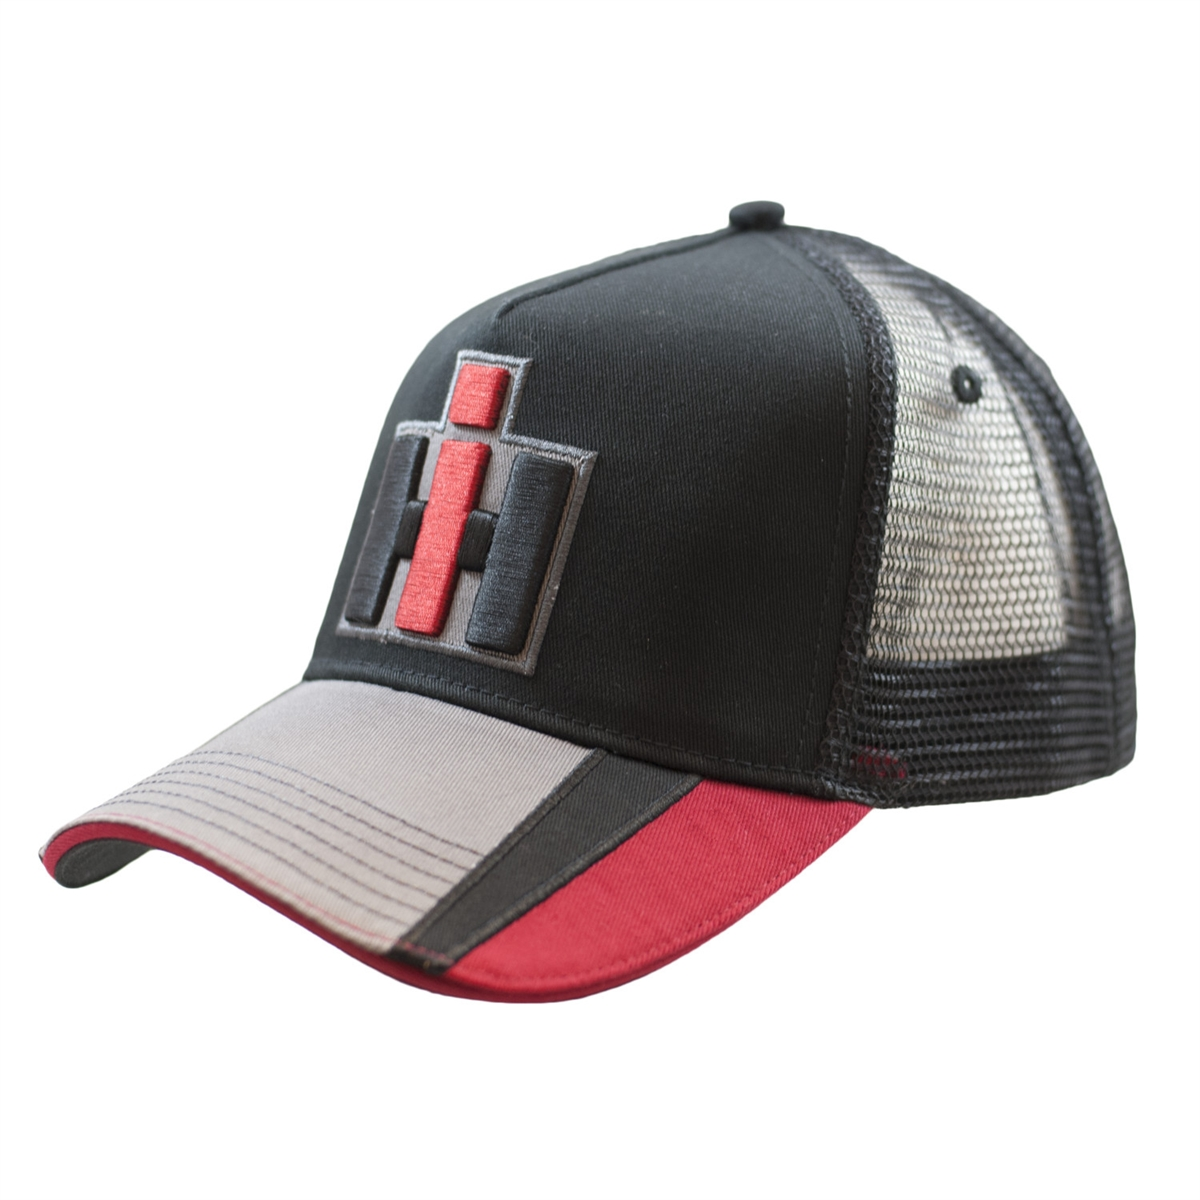 8990cfcc72c33 IH Black Red and Gray Hat